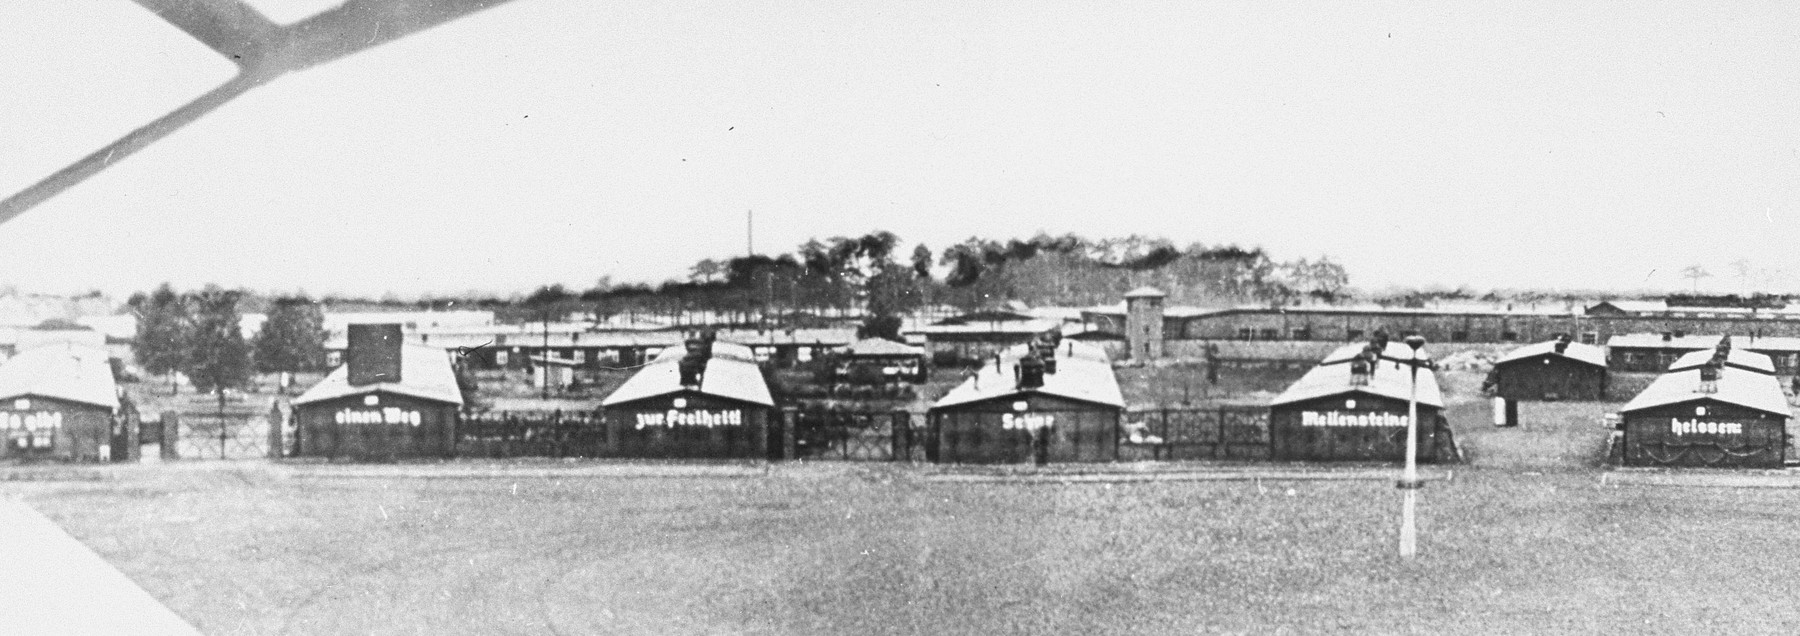 View of the prisoners' barracks in Sachsenhausen, with Nazi slogans painted on the front. [Oversized print, one of three, making up a panorama]